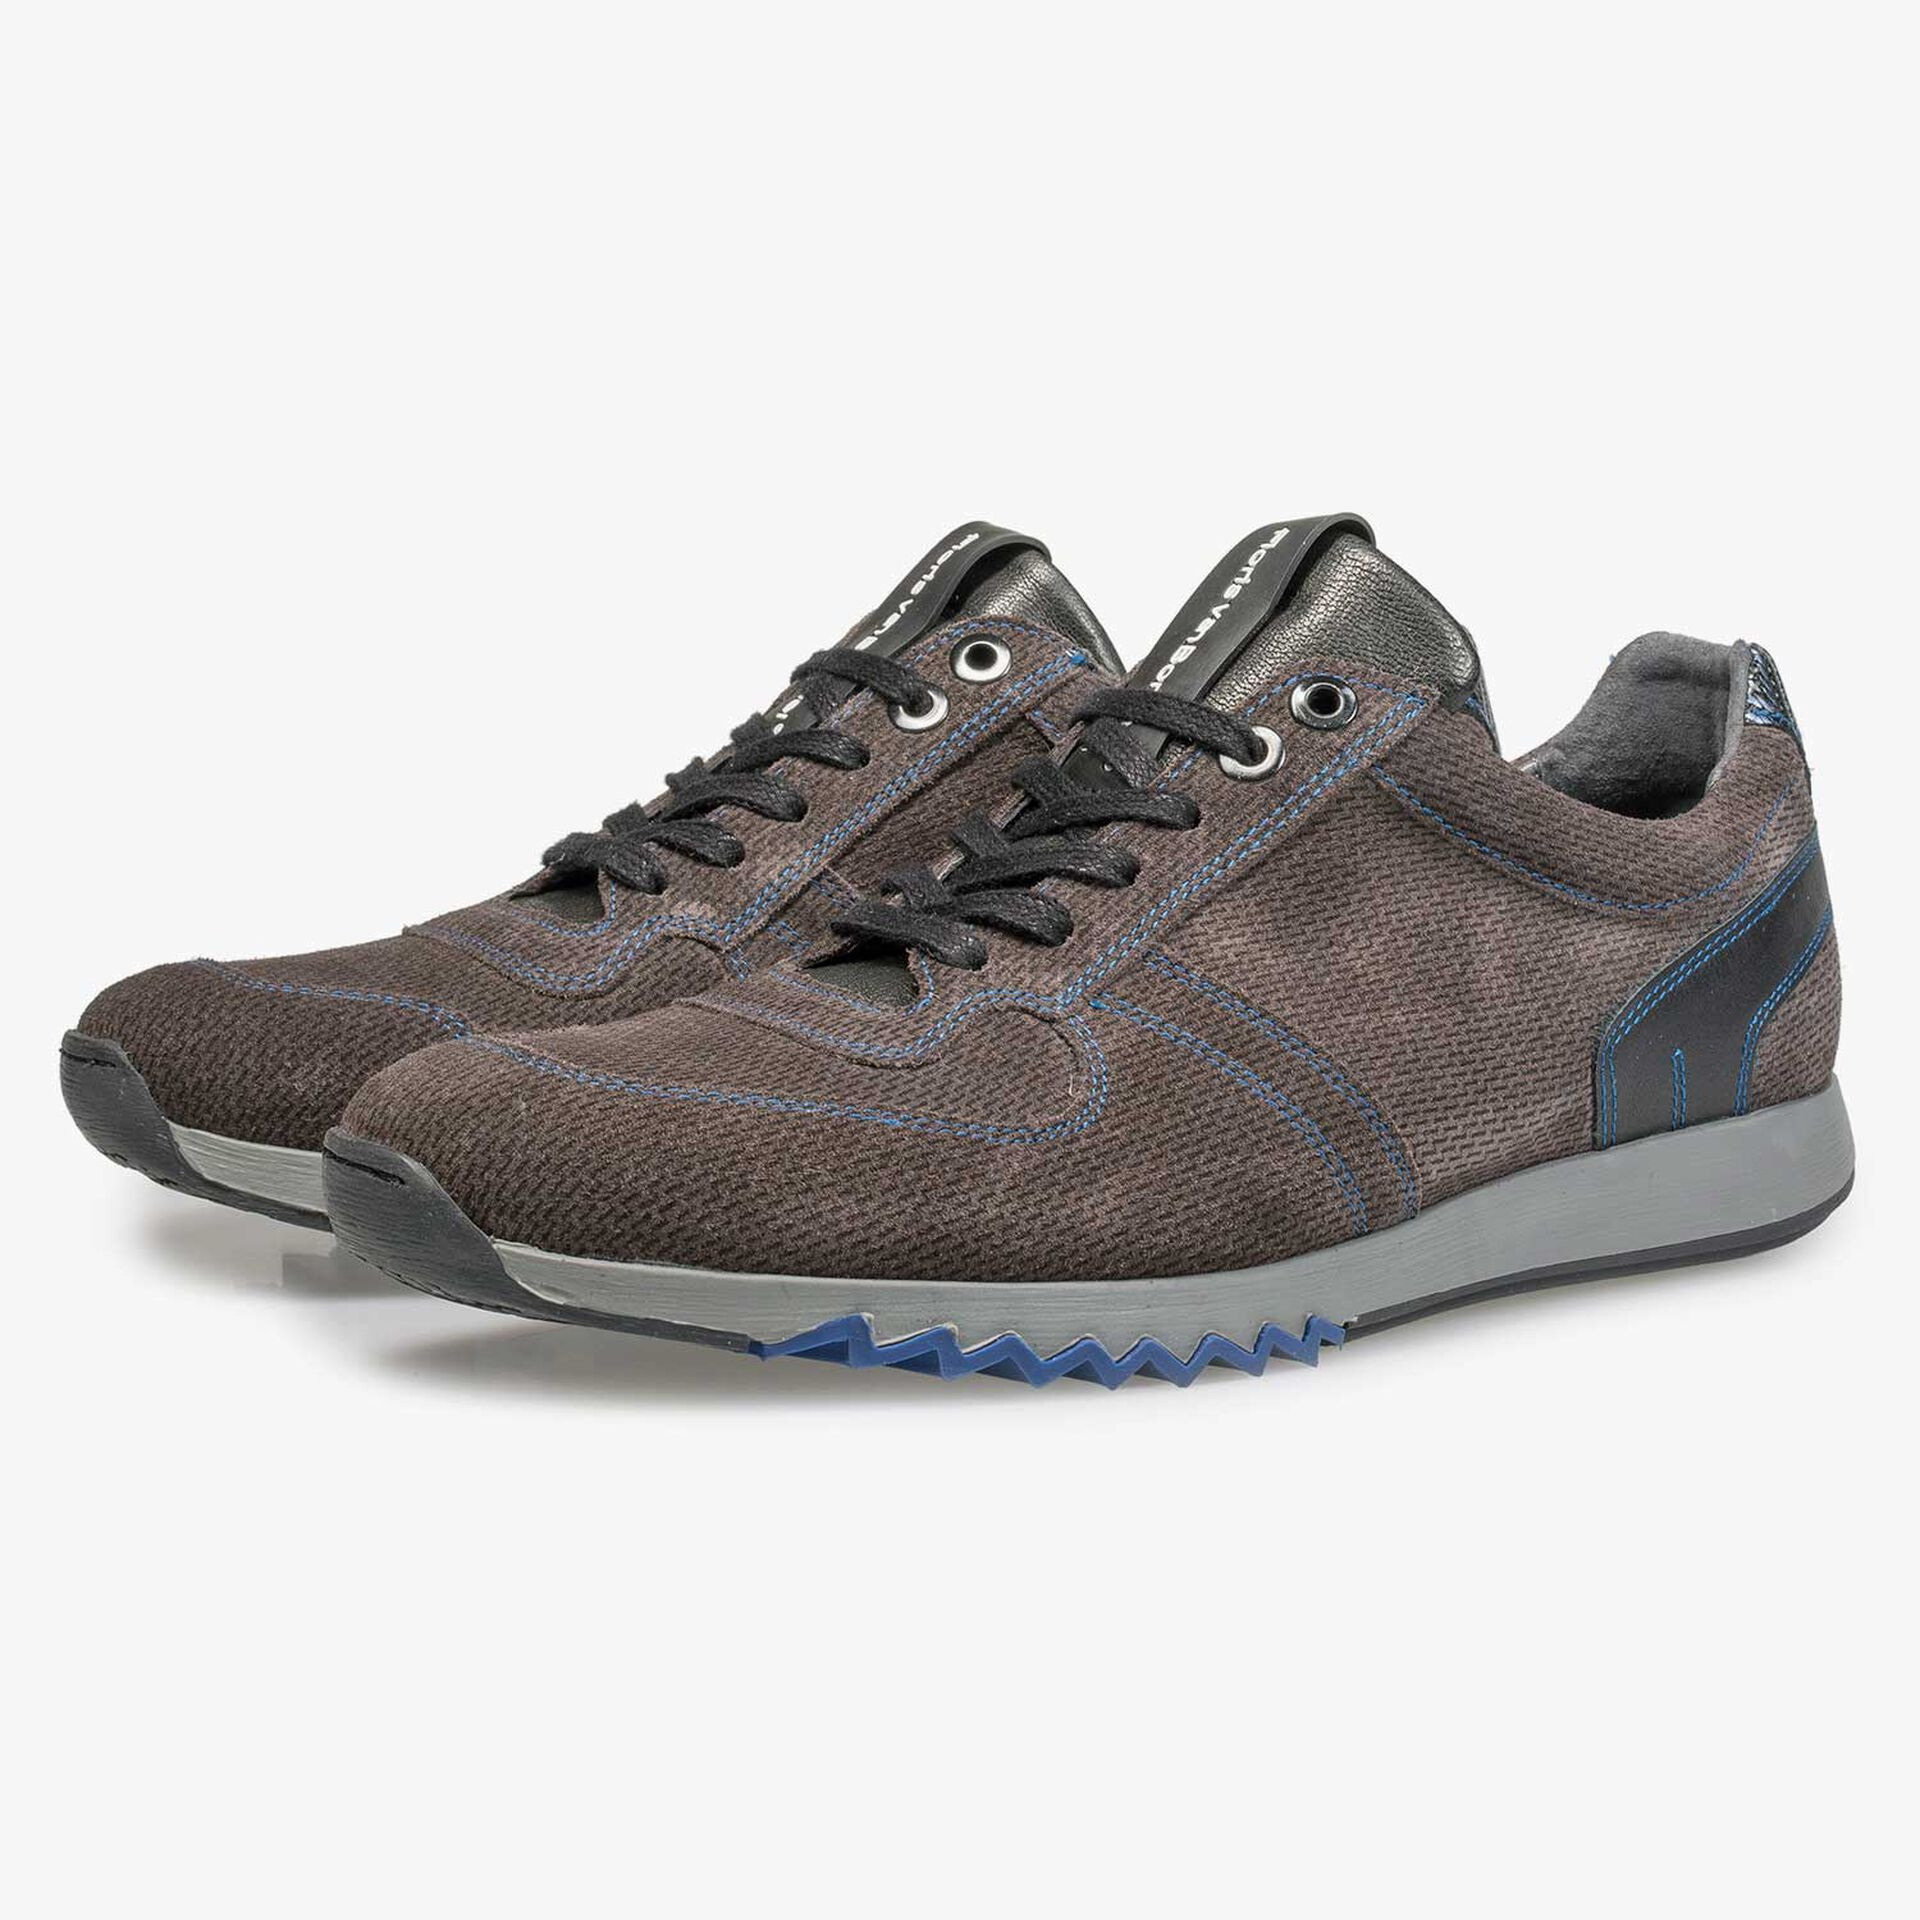 Grey-brown sneaker with cobalt blue details